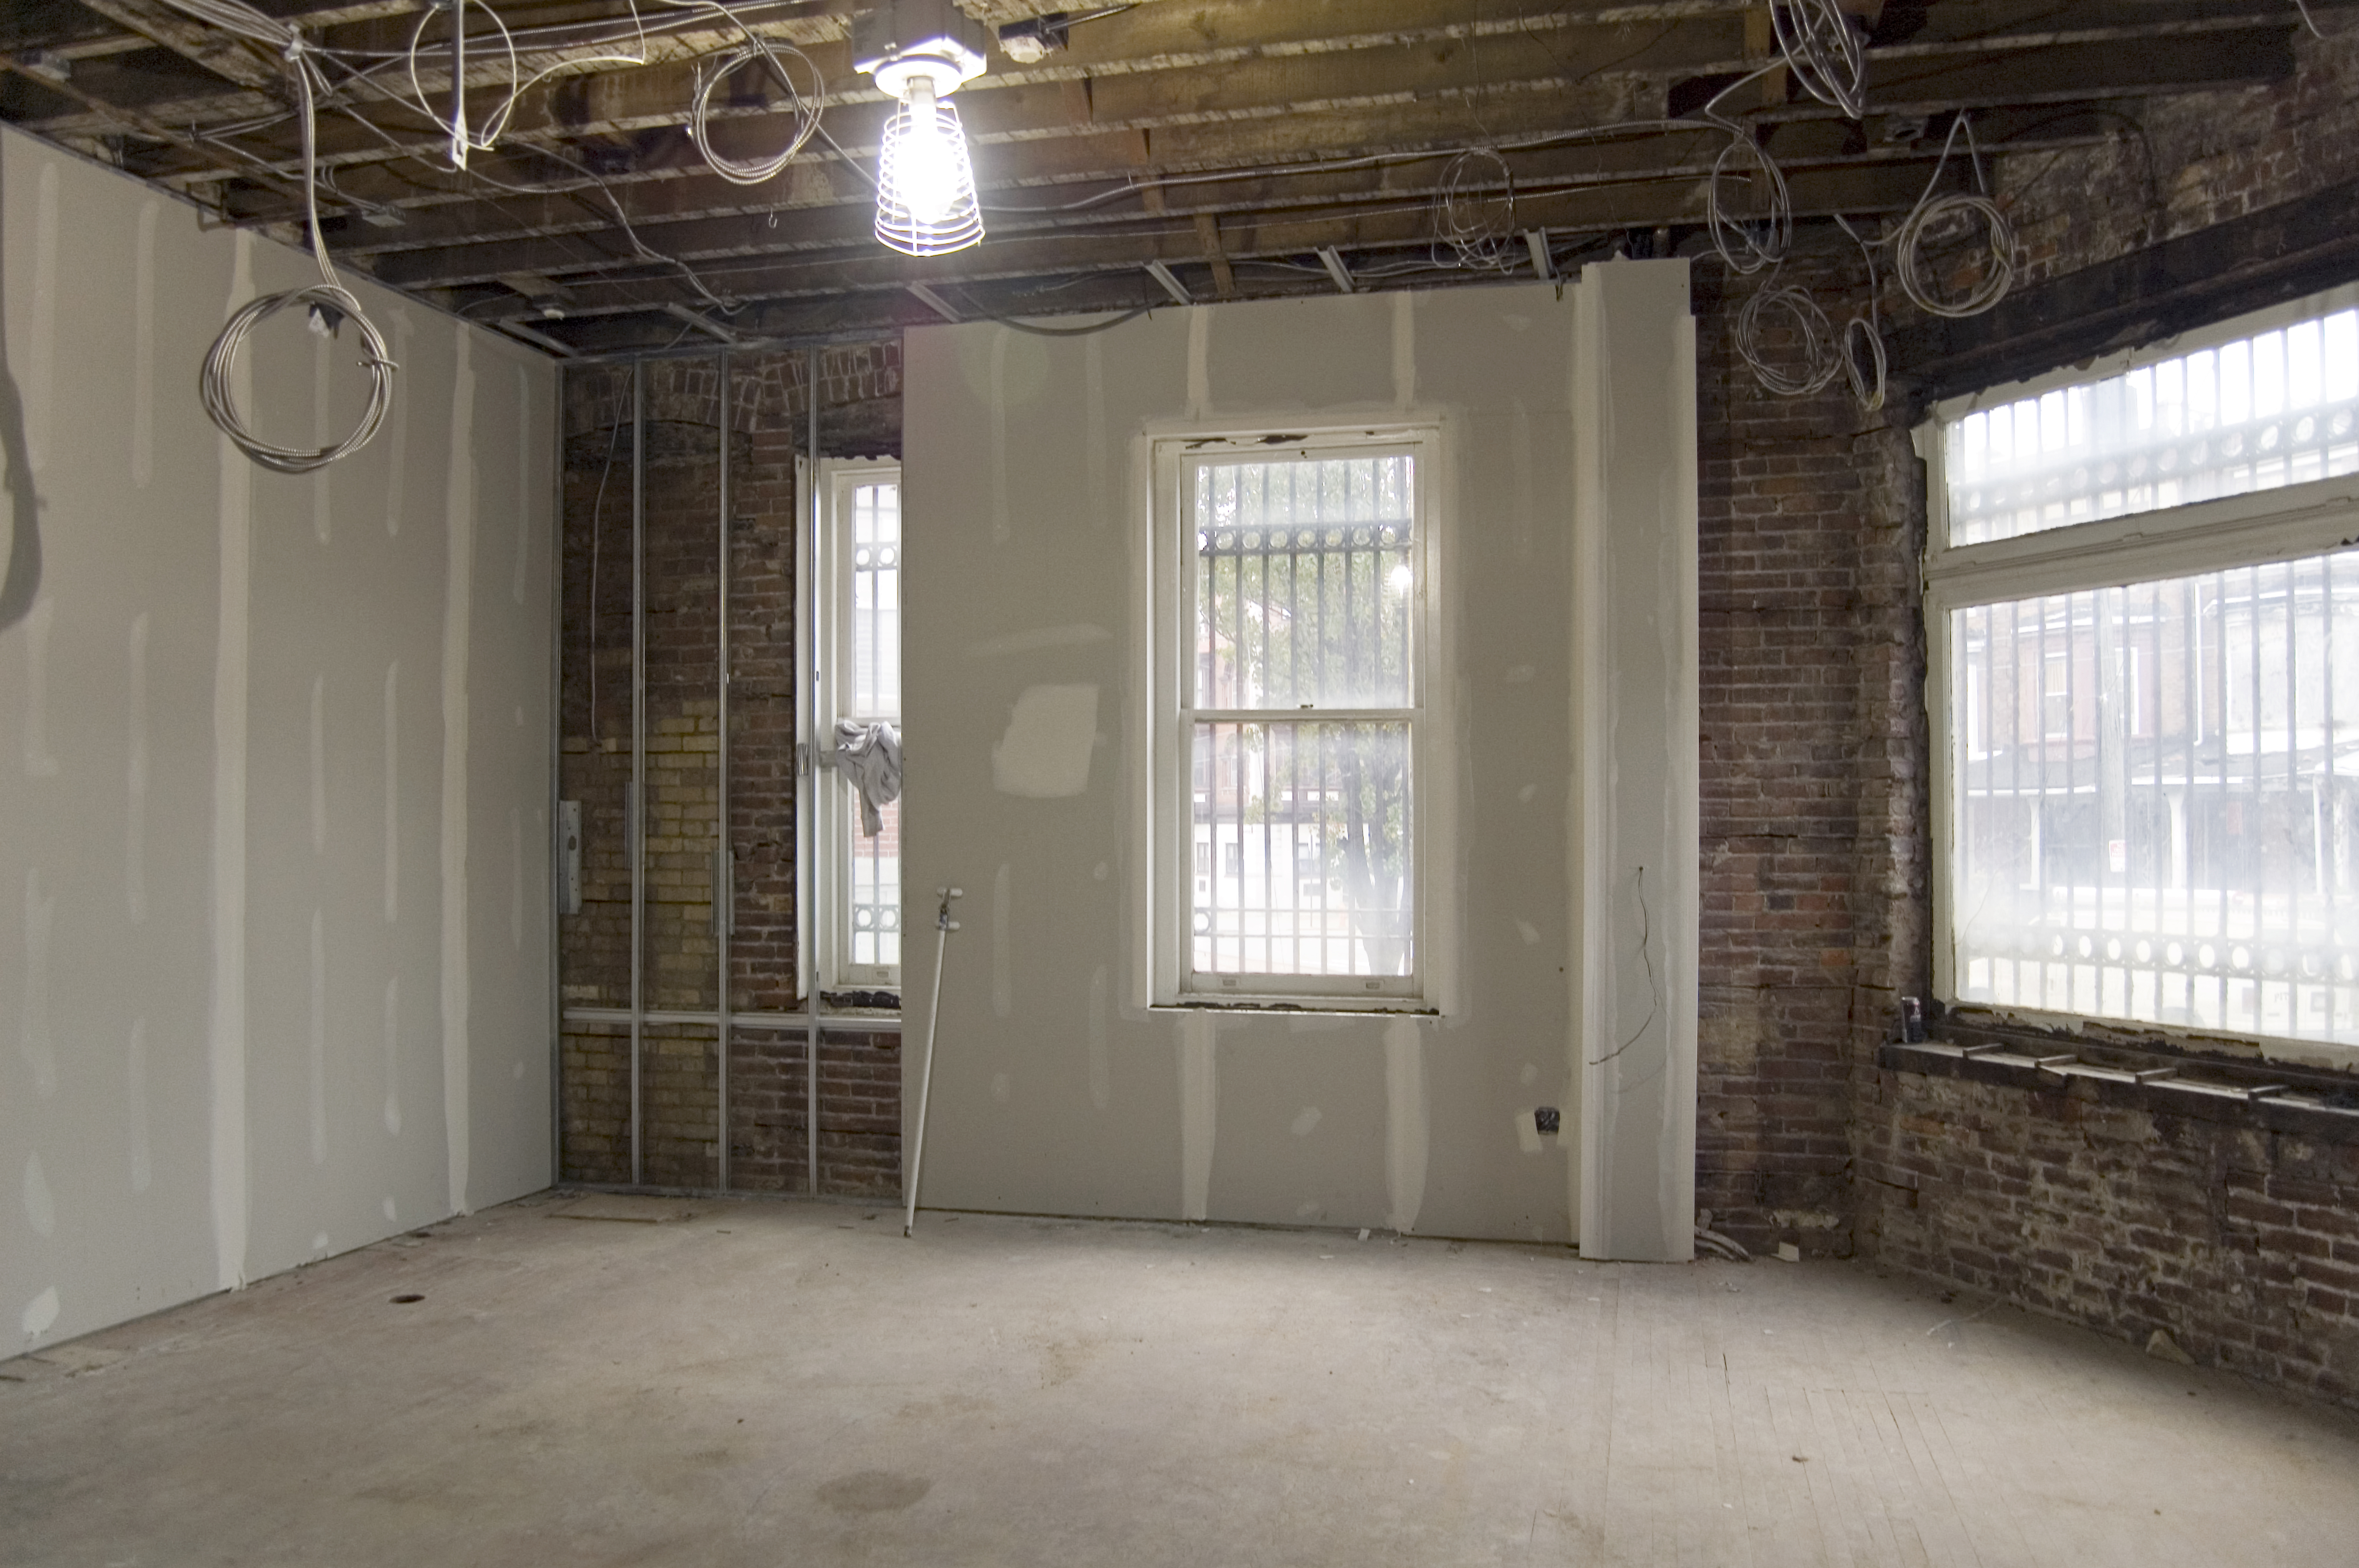 Dry Wall Construction : Mariposa coop construction update on the level with